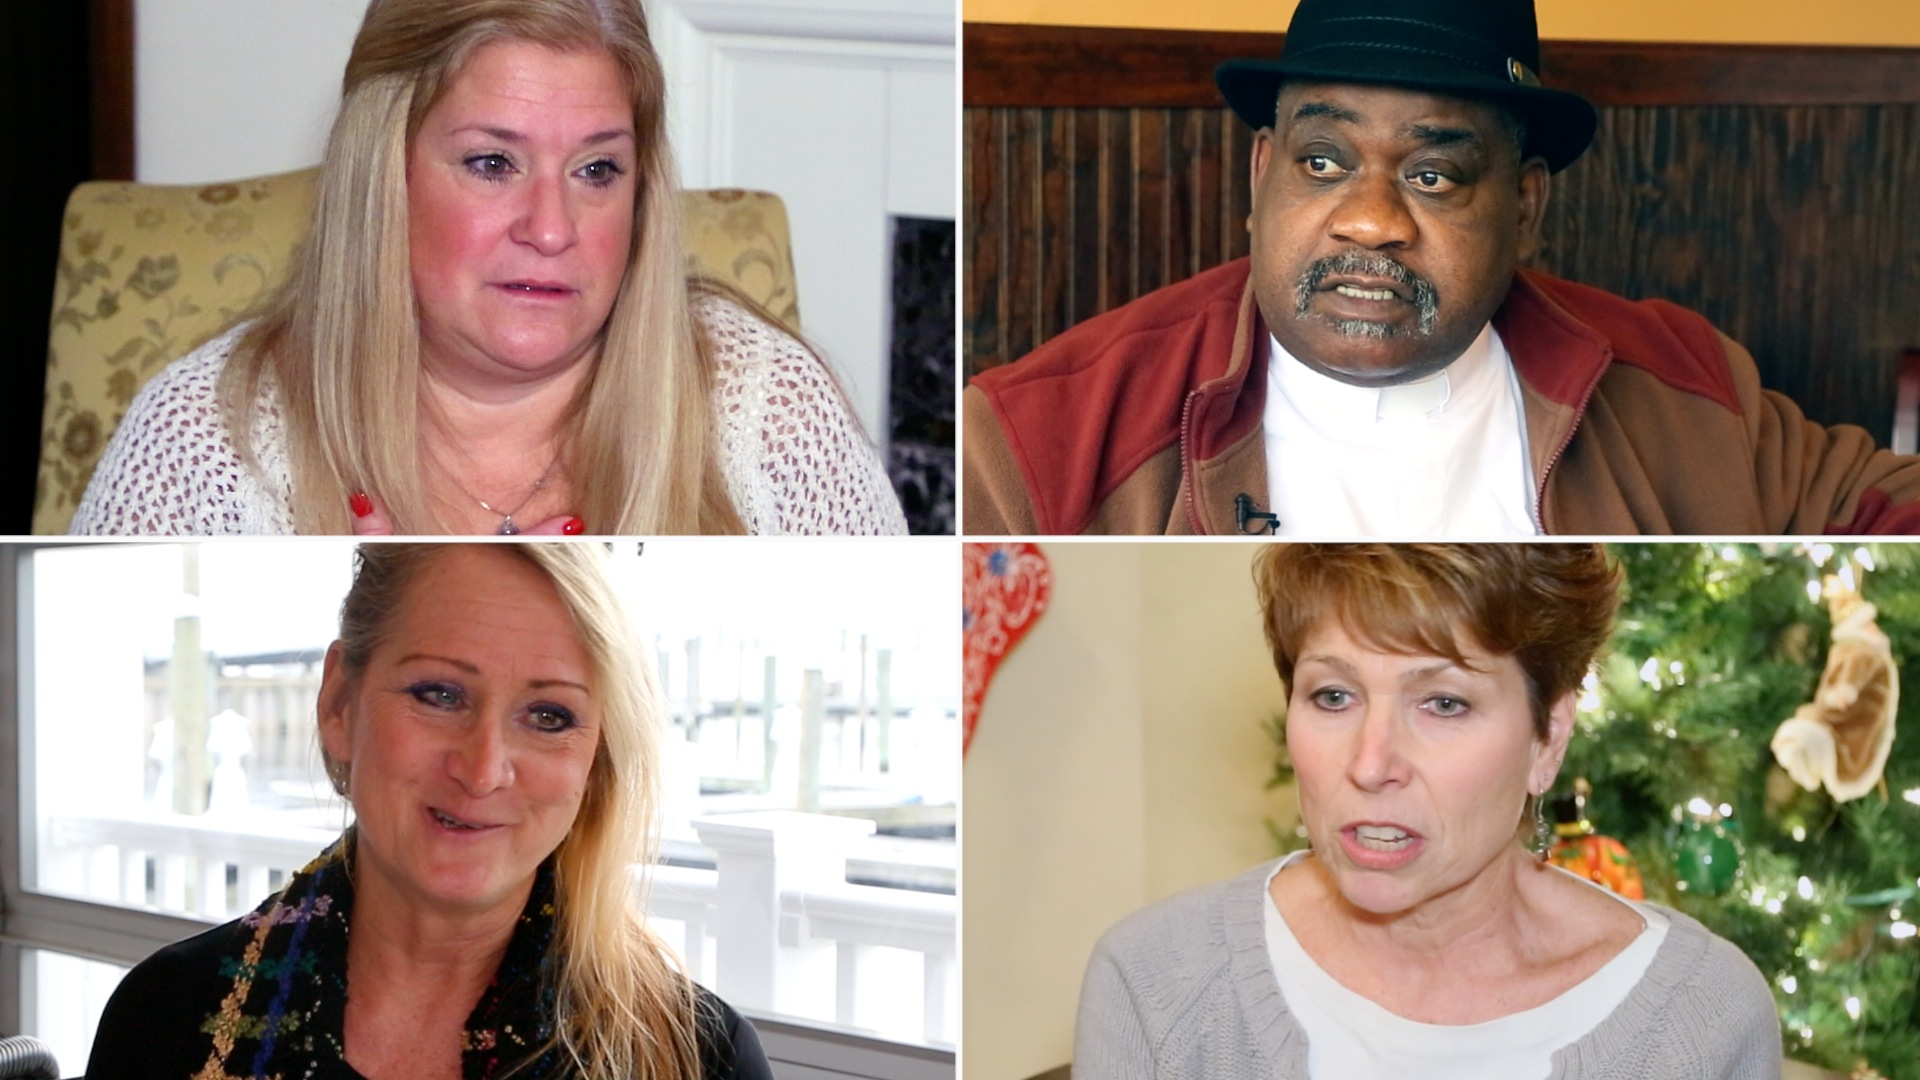 Getting Chris Christie's goat: Activists try to rile up governor, pile up some YouTube hits